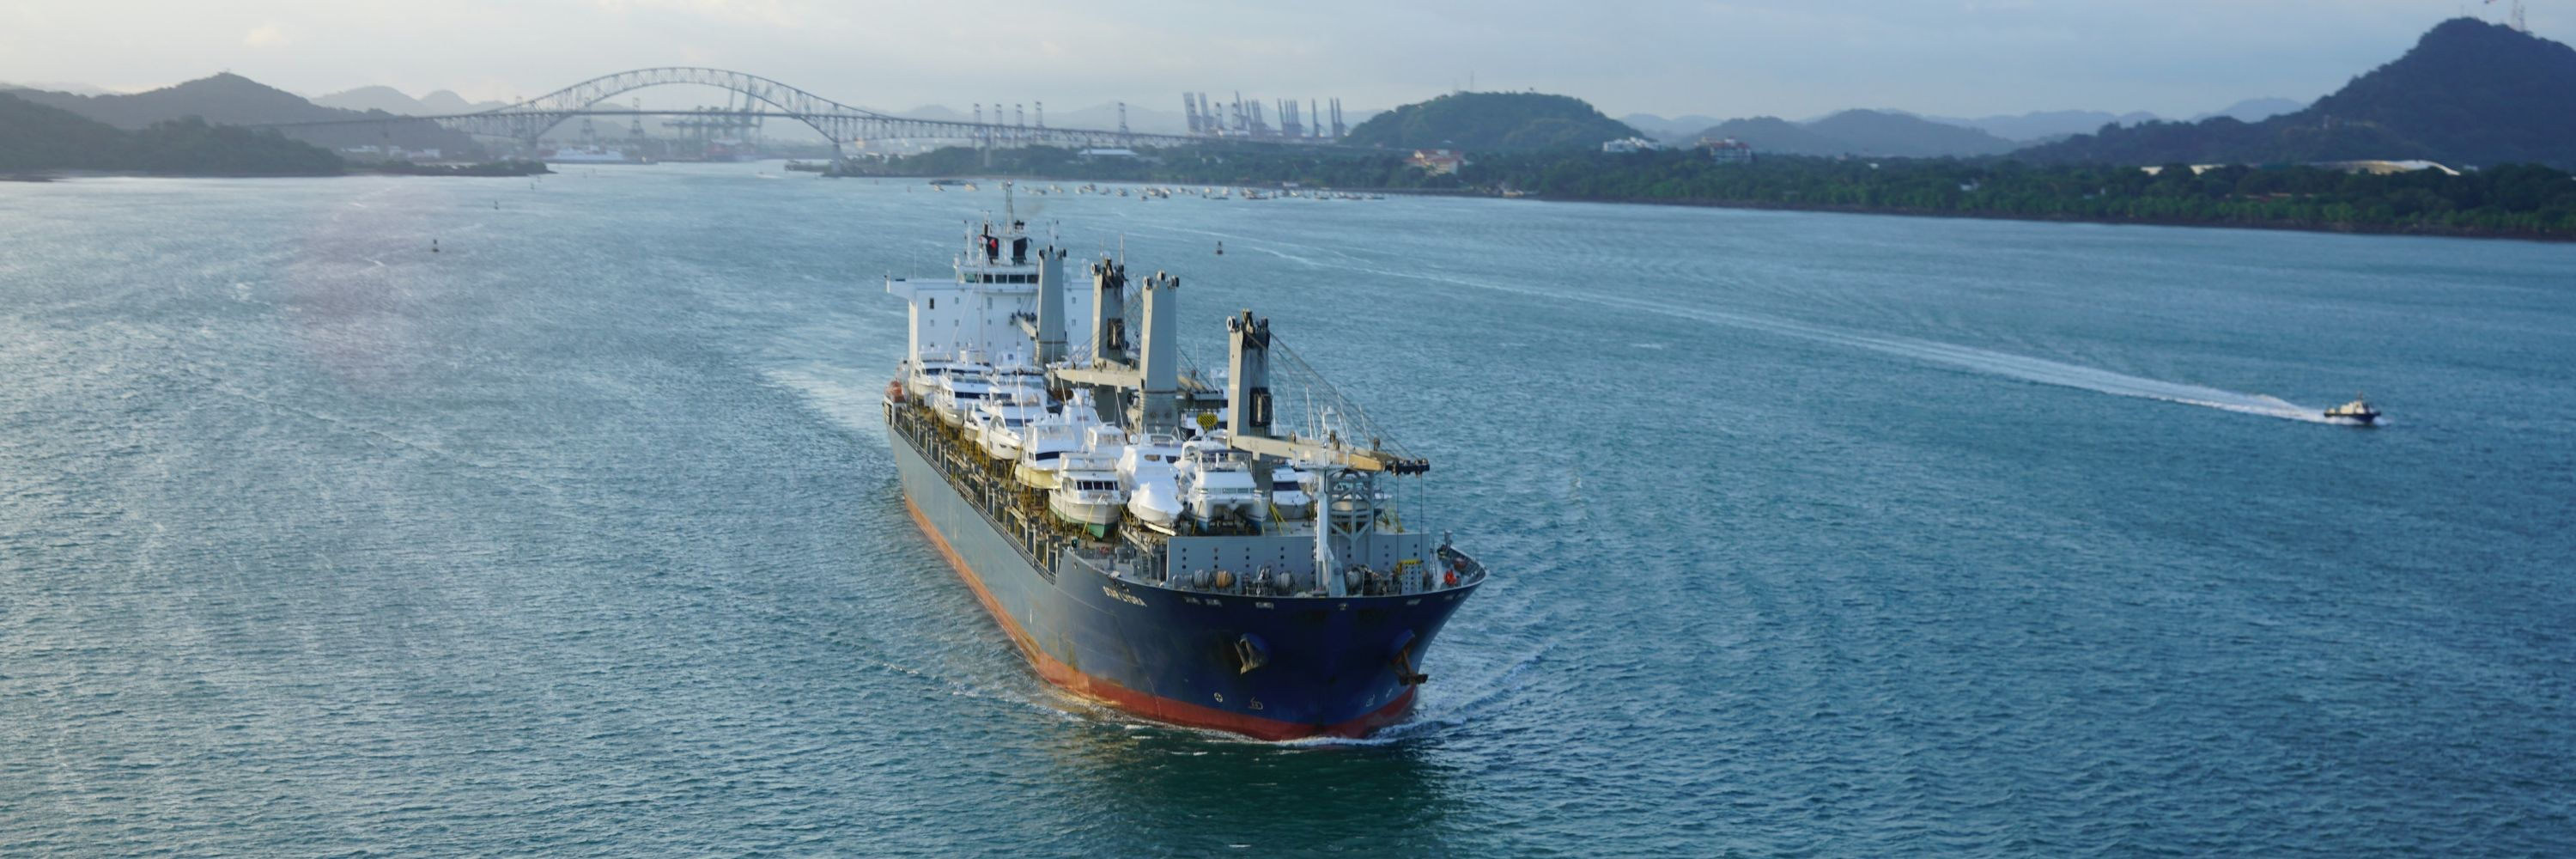 G2 Ocean expands Project Cargo